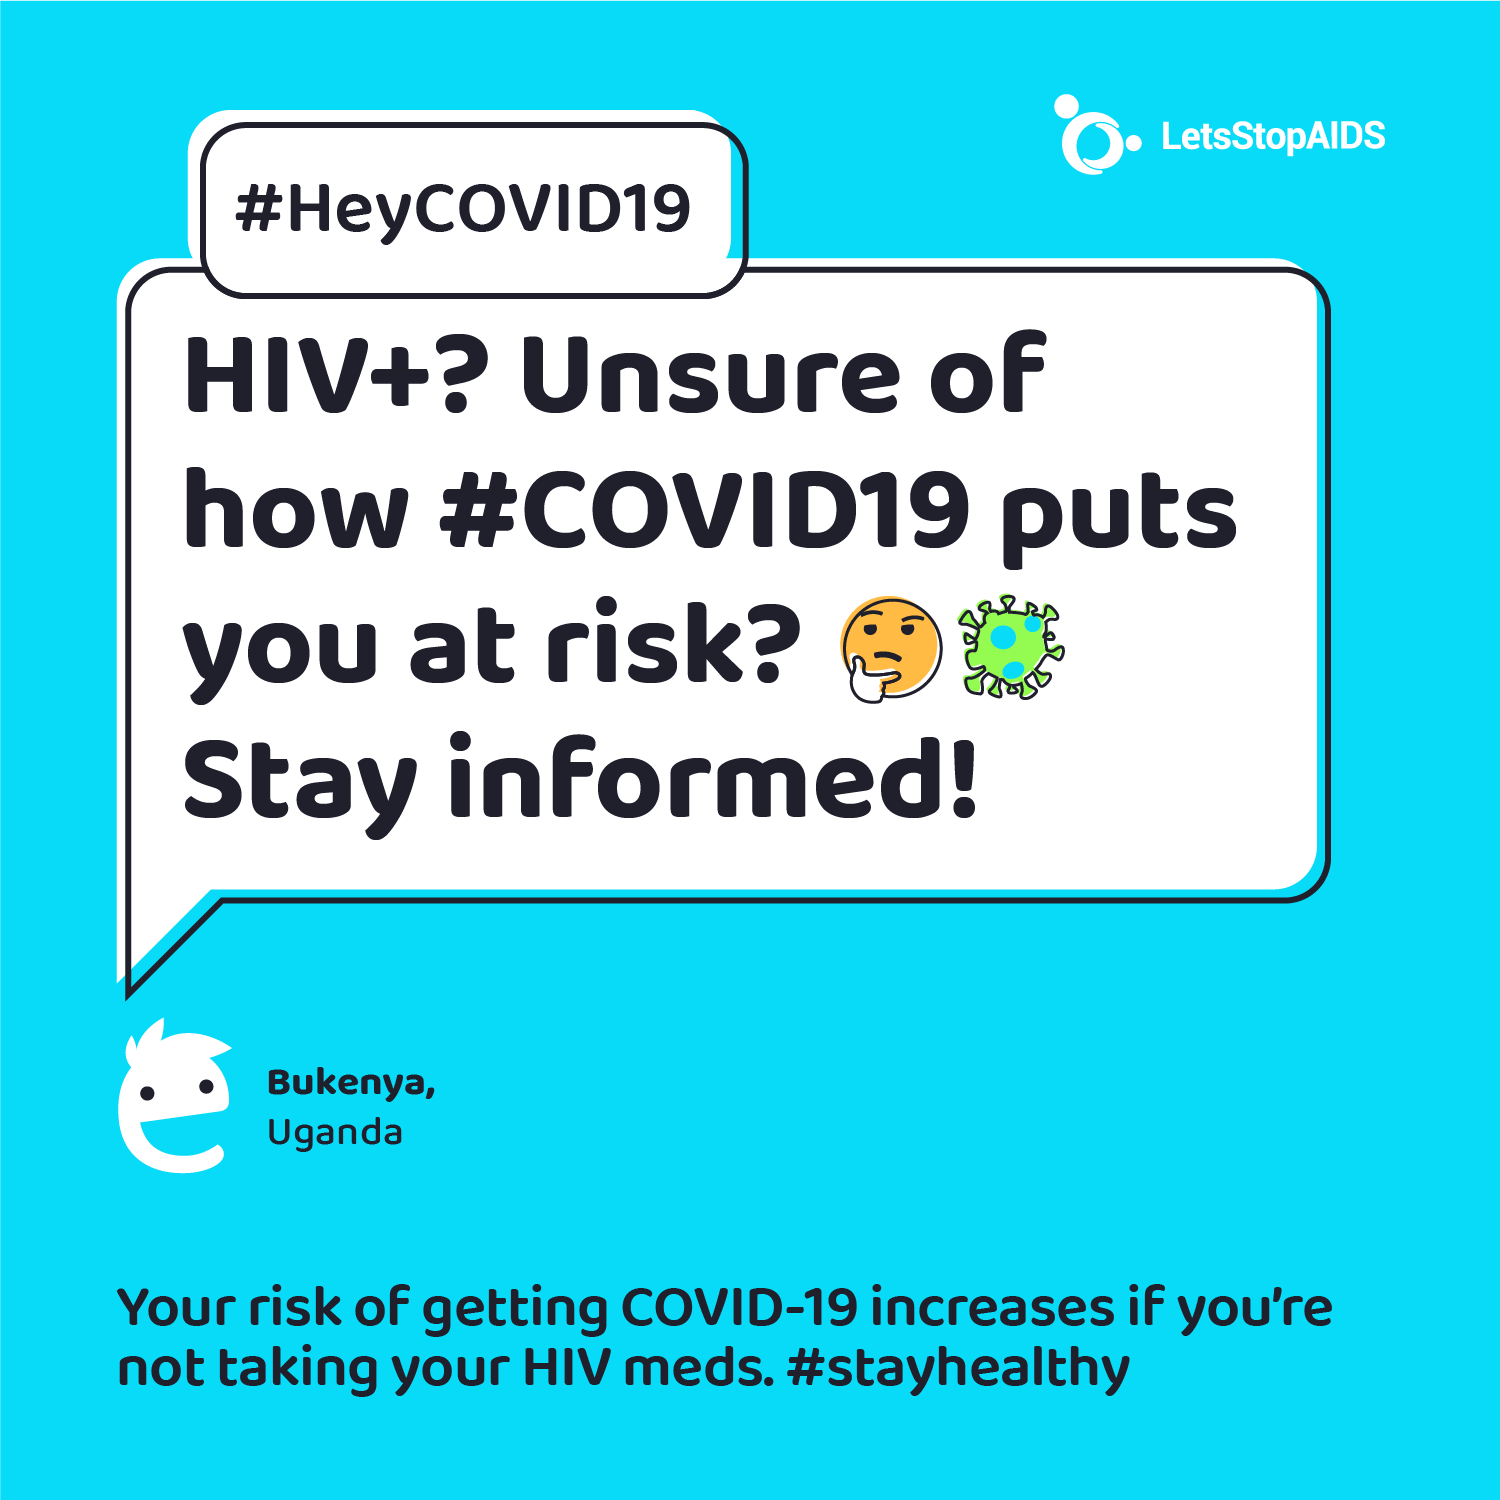 HIV+? Unsure of how COVID-19 puts you at risk? 🤔 Stay informed!